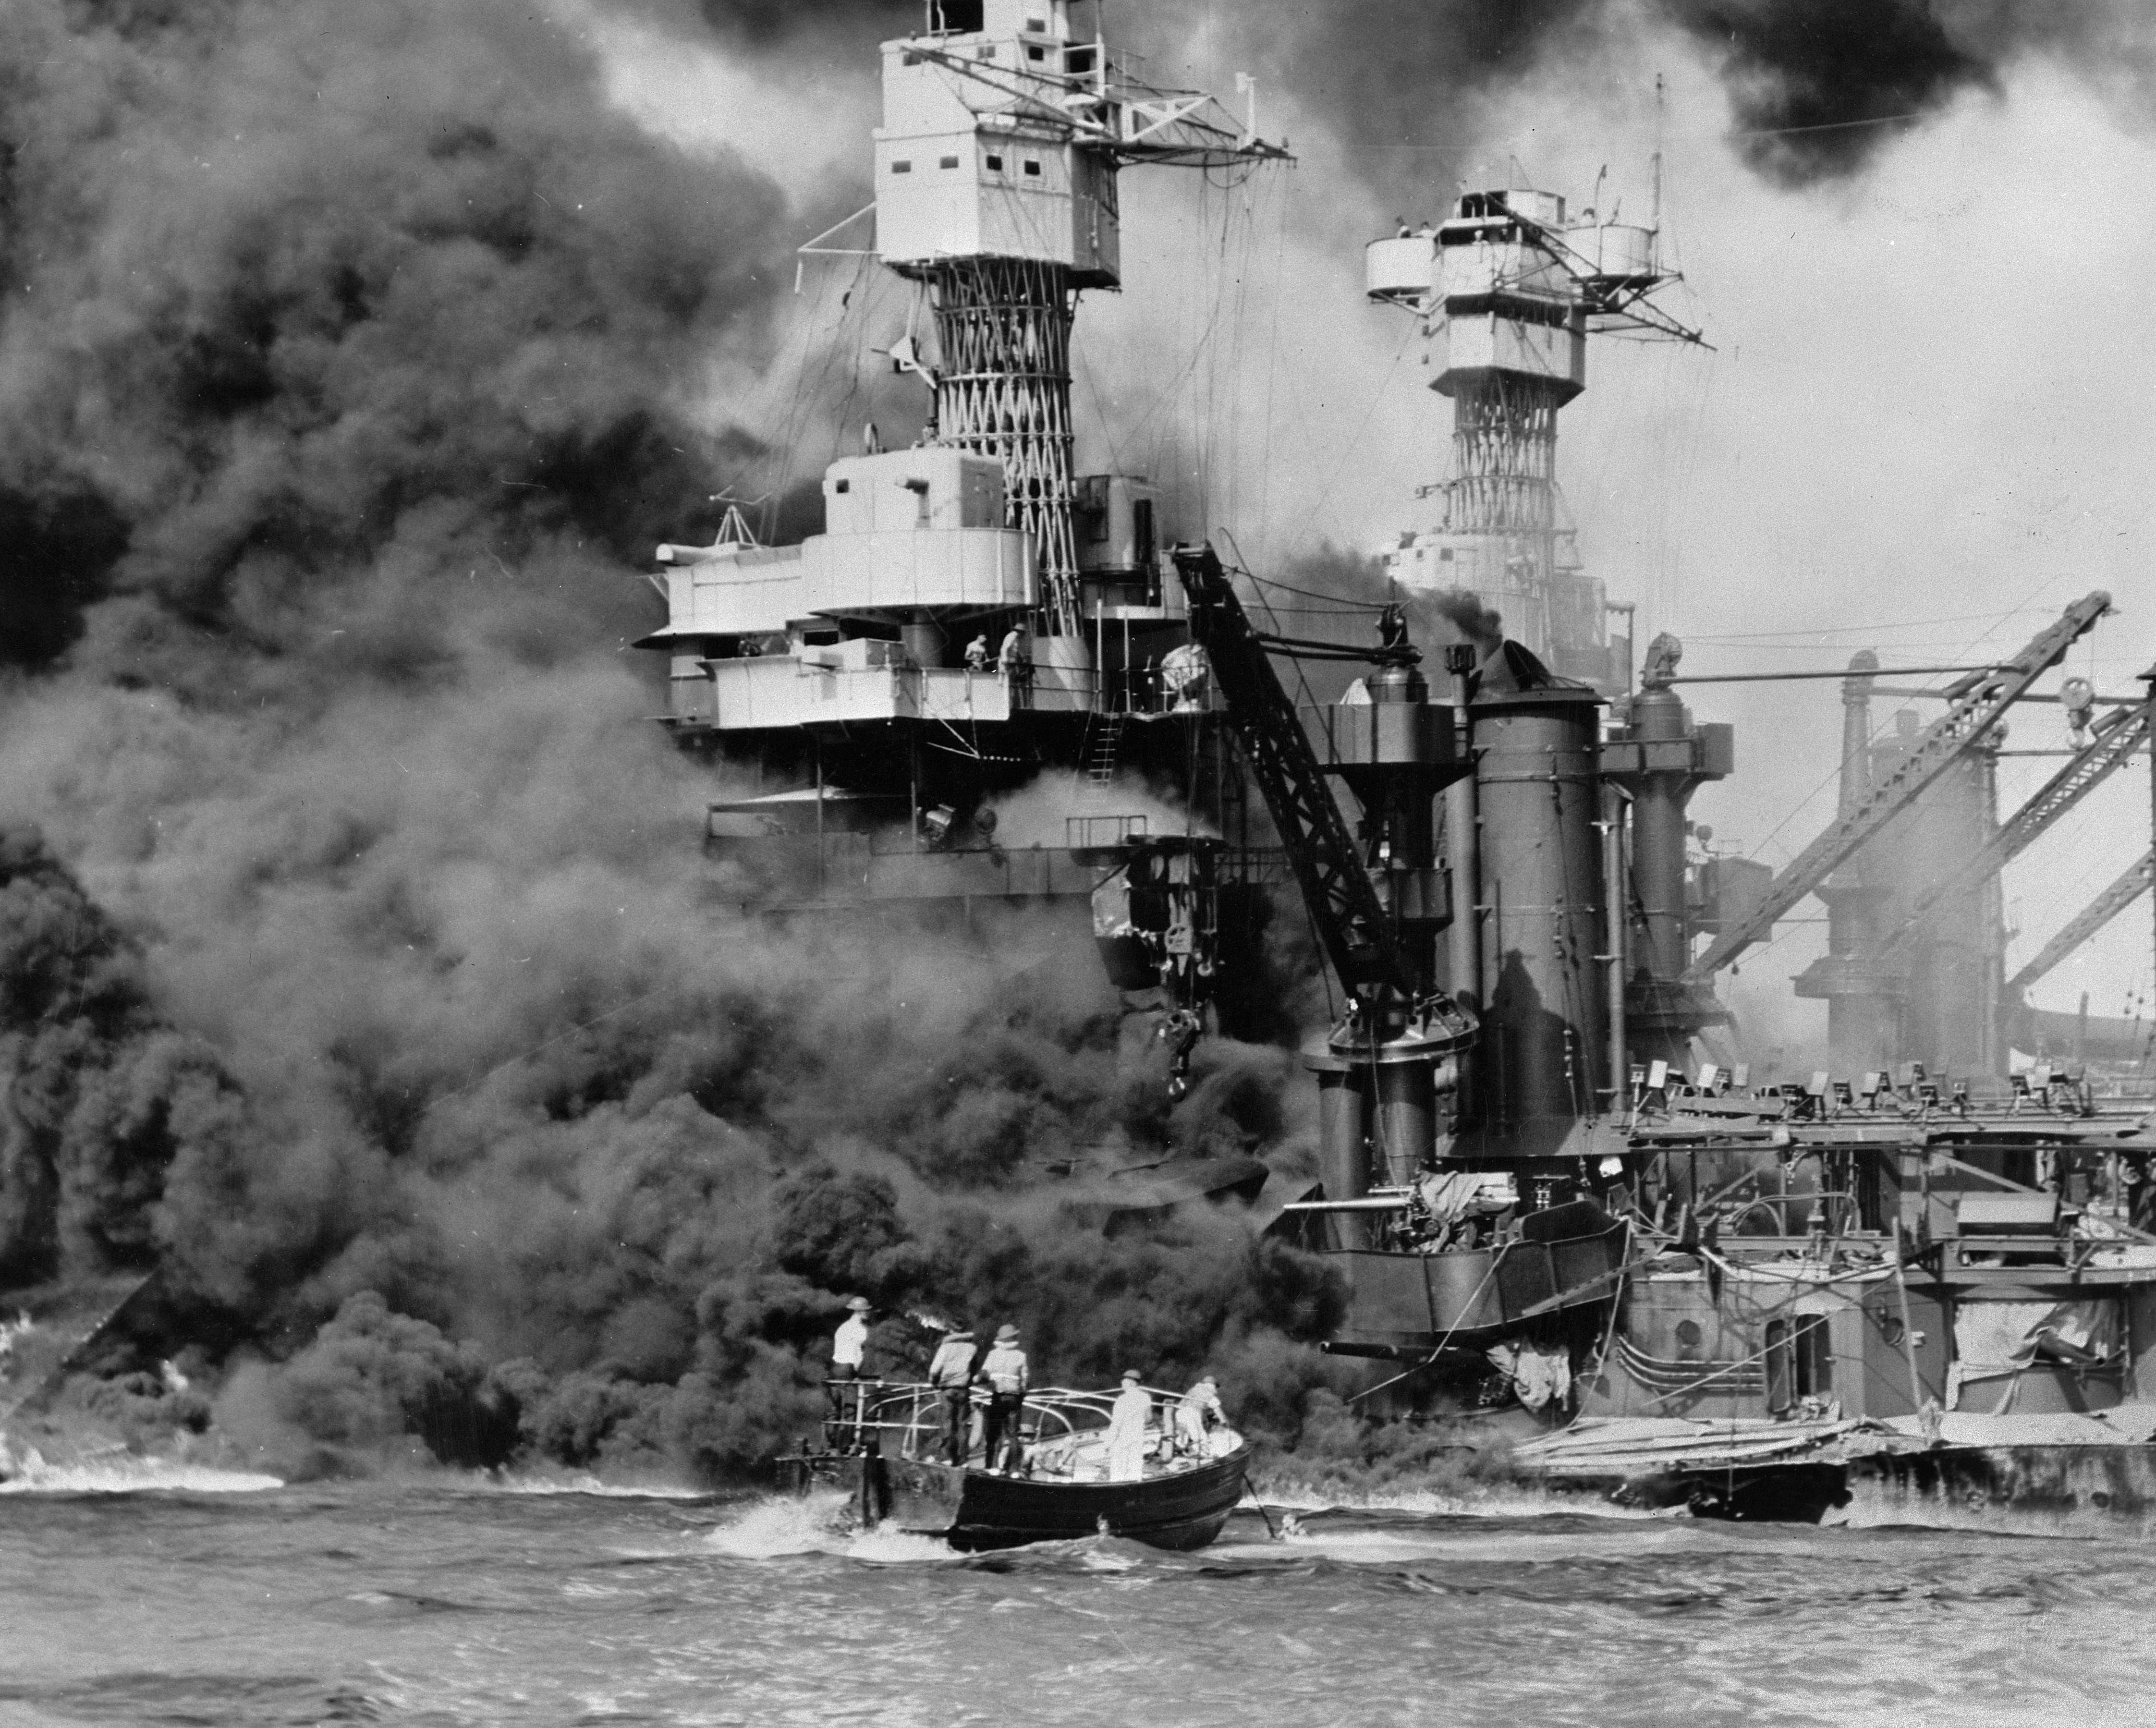 A small boat rescues a seaman from the USS West Virginia burning in the foreground in Pearl Harbor, Hawaii on Dec. 7. (U.S. Navy via AP)